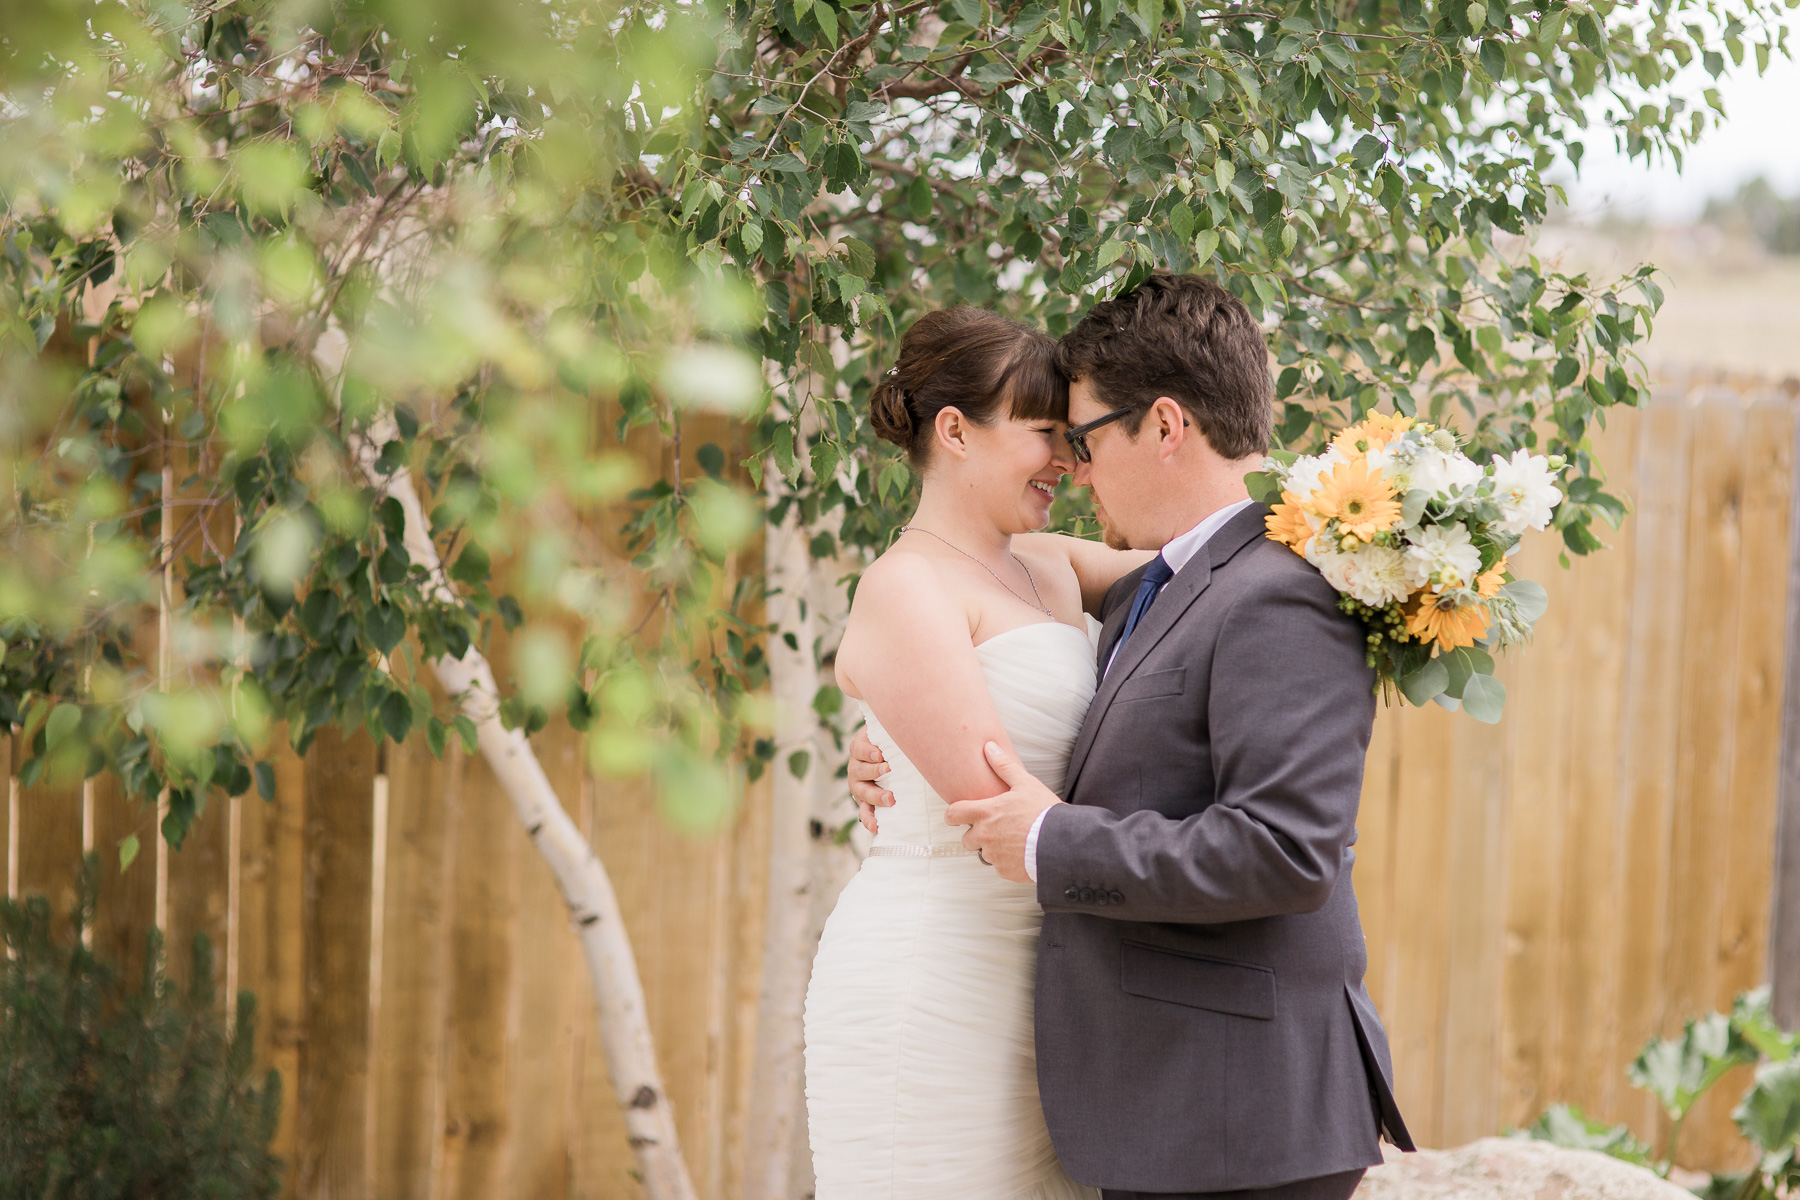 Intimate Backyard Wedding Photography by Laramie Based Wedding Photographer